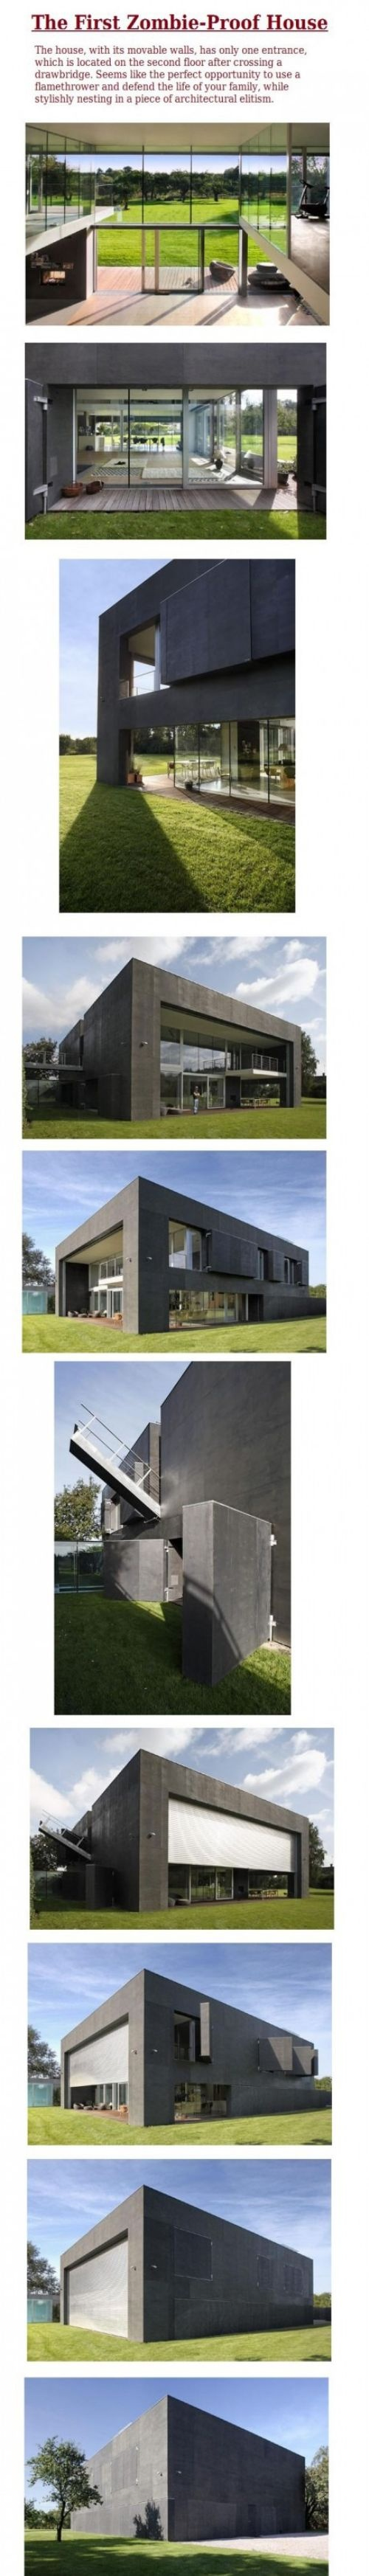 Zombie-Proof House.. I want one!Zombieproof House, Zombies Proof House, Zombies Apocalypse Proof House, Dreams, Walks Dead, Zombie Proof House, First House, Funny, Zombie Apocalypse